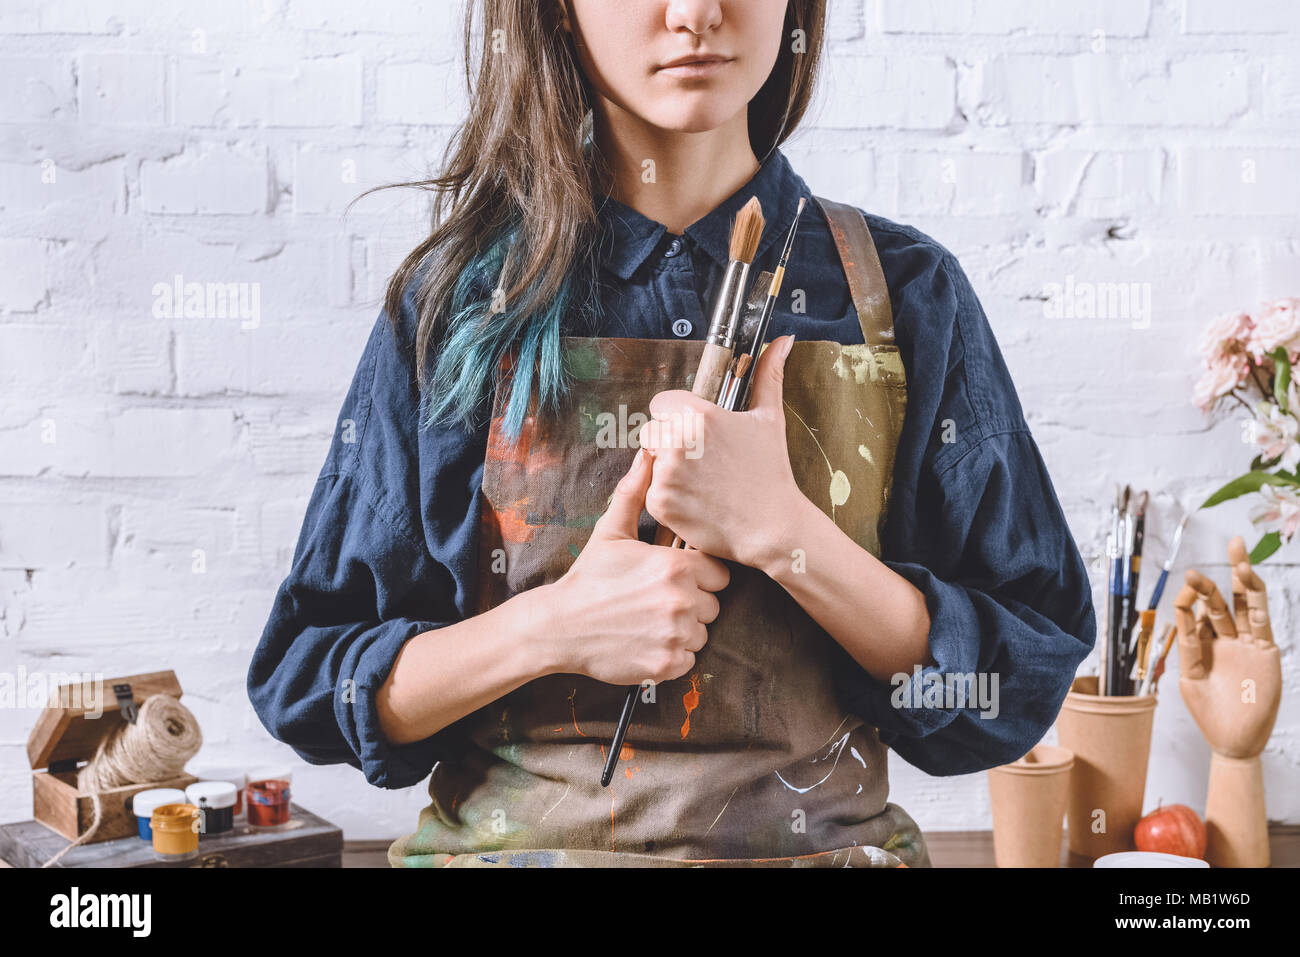 cropped image of female artist holding brushes  - Stock Image